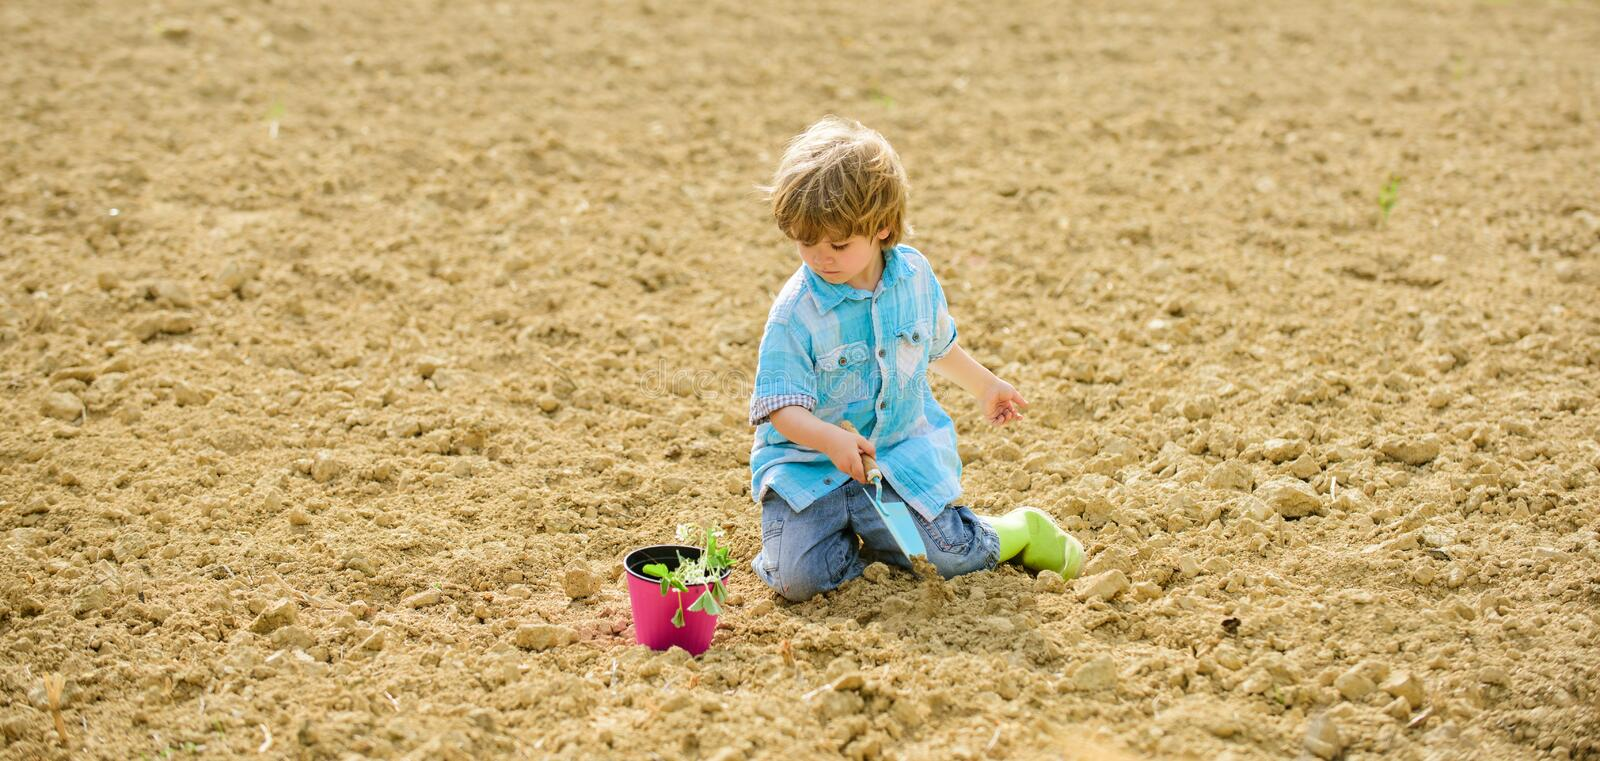 Happy child gardener. botanic worker. Spring season. ecology life. eco farm. human and nature. earth day. new life. Summer farm. small kid planting a flower stock photo